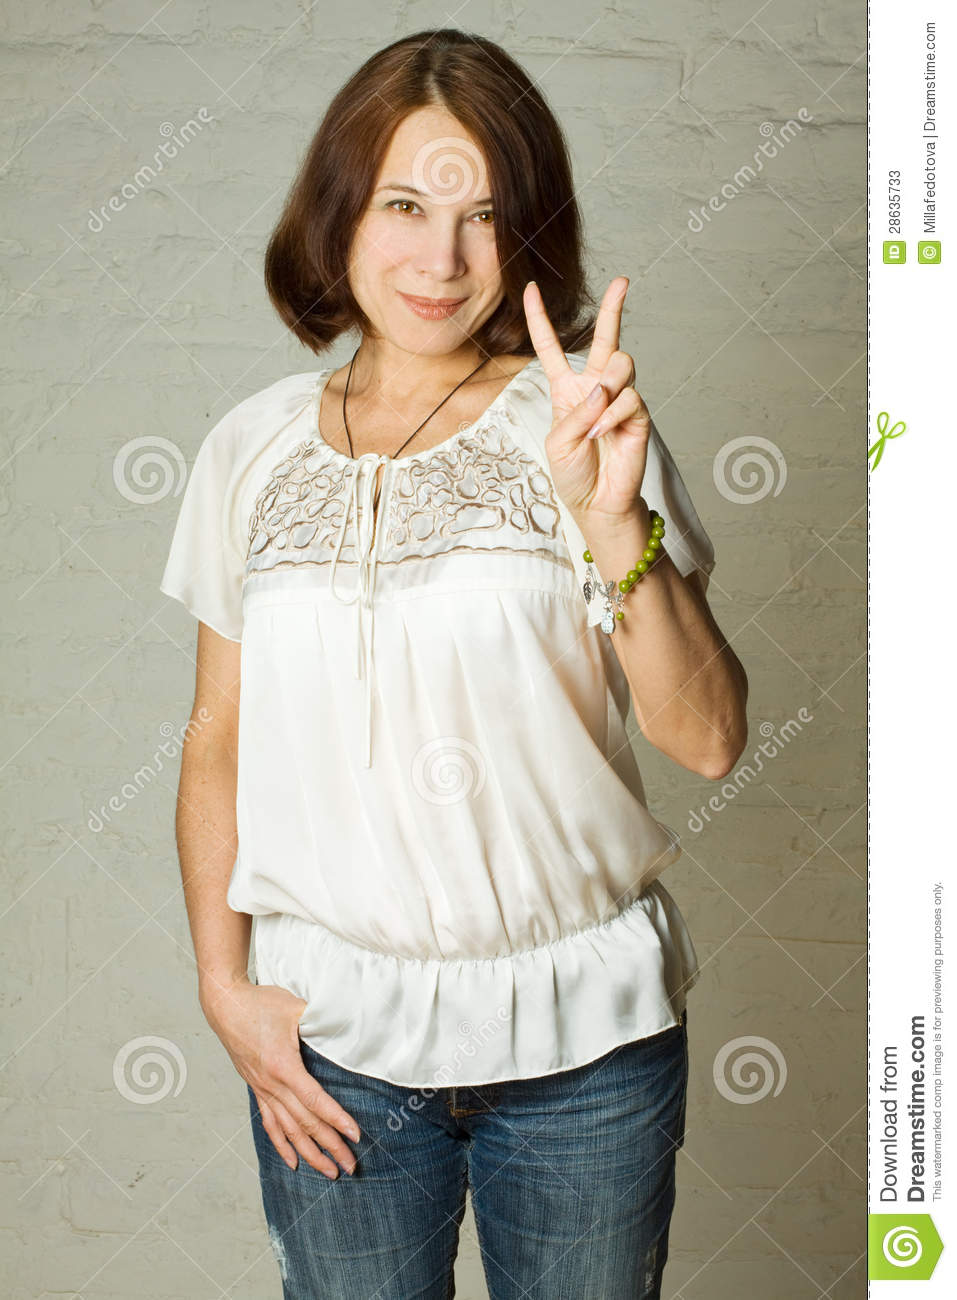 woman, 40s - smiling brunette stock image - image of white